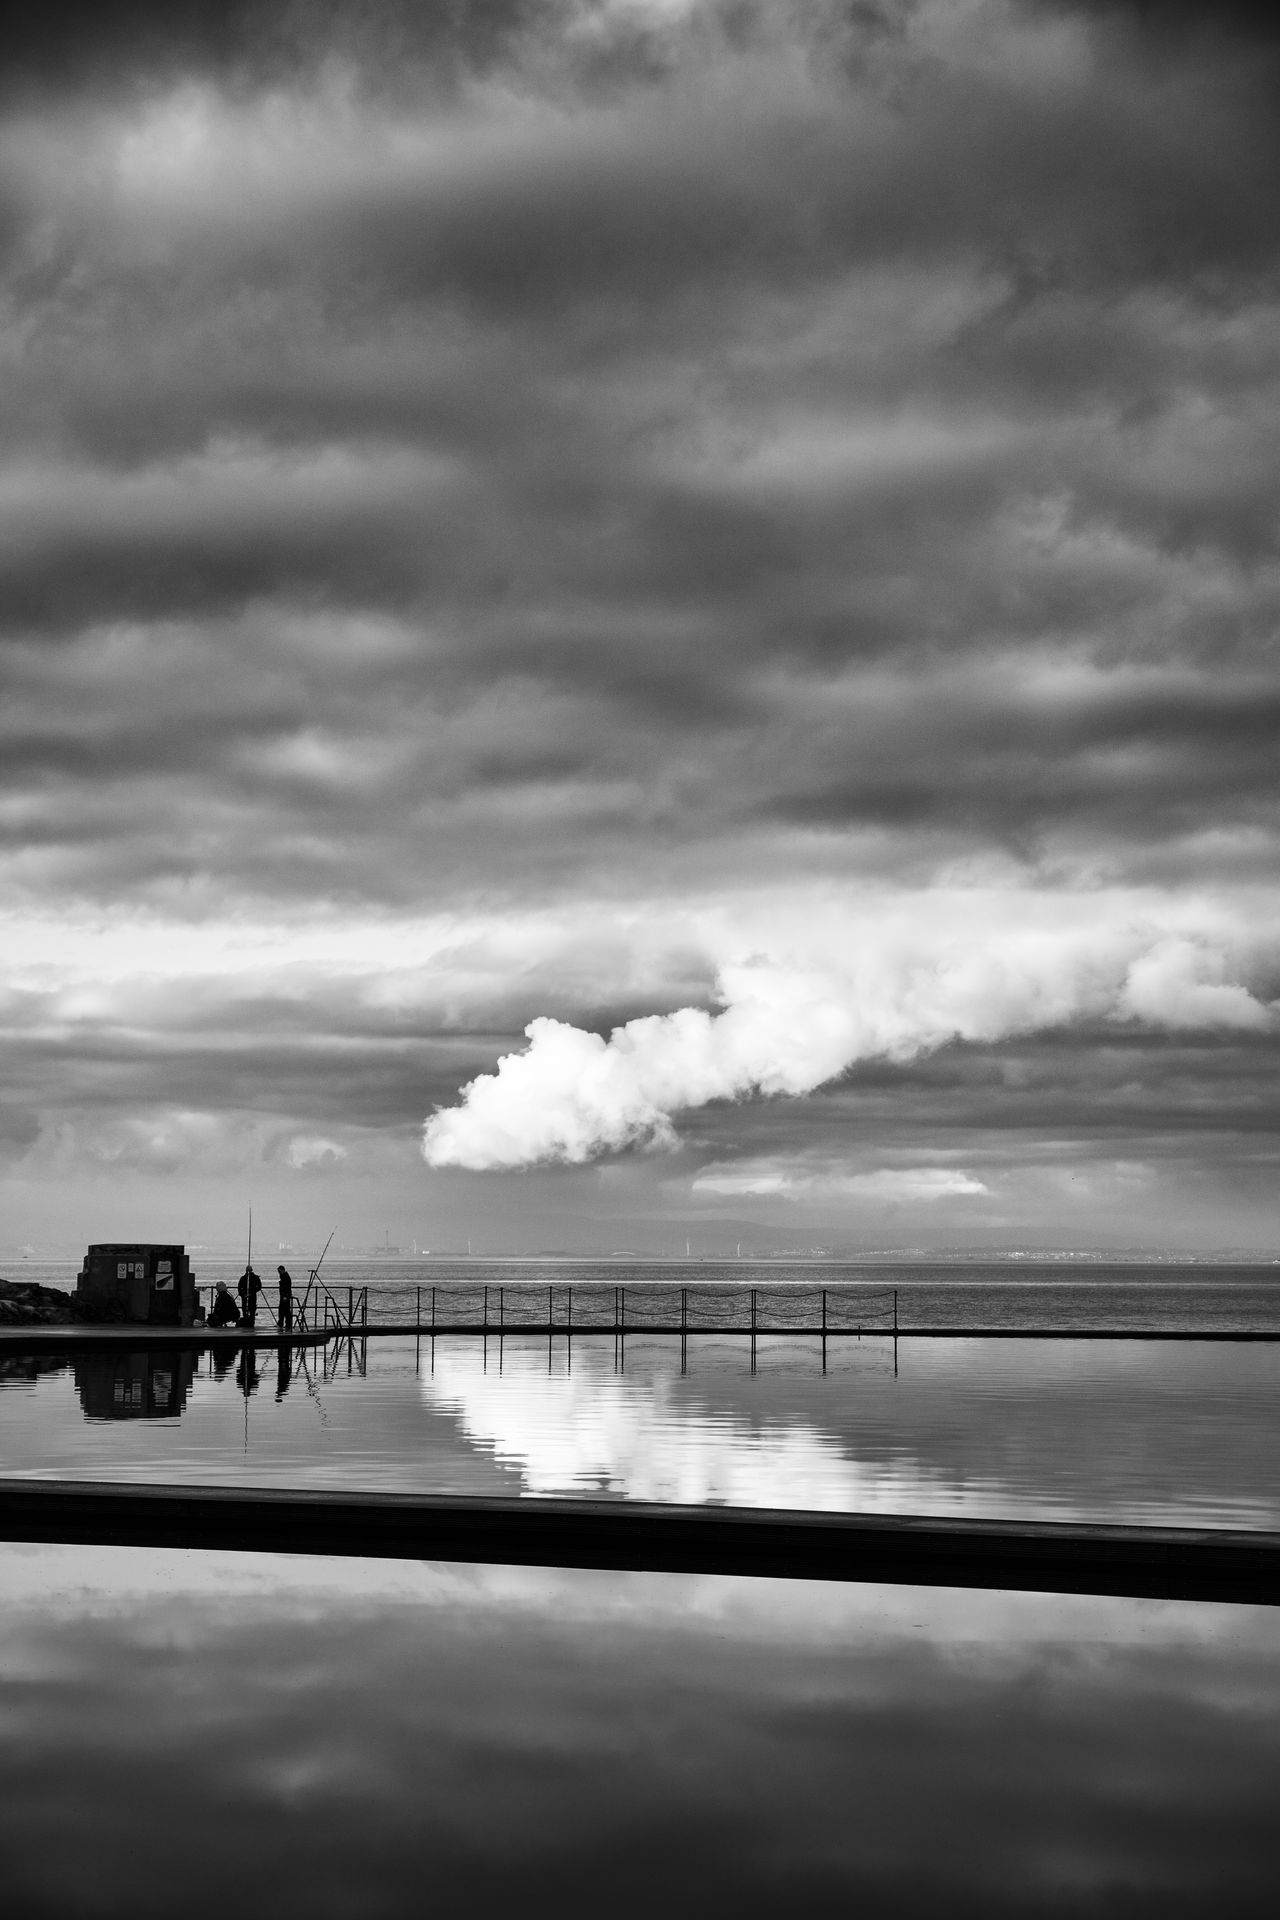 Blackandwhite Cloud - Sky Clouds Evening Fishing Monochrome Outdoors River Severn Sea Sea And Sky Seascape Seascape Photography Sony A99V Sunset Twighlight Water